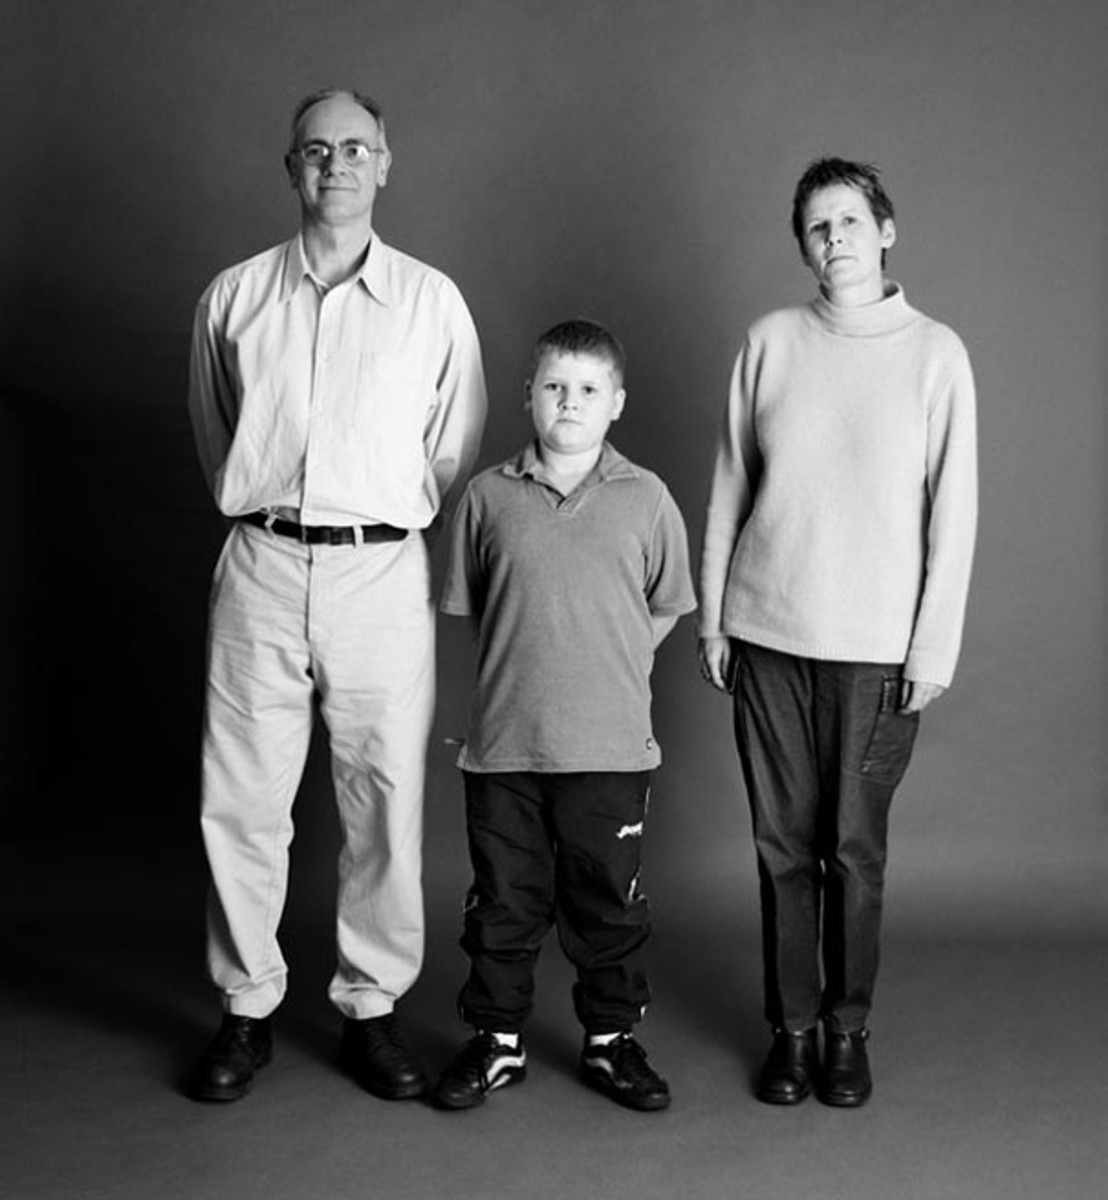 the-family-aging-photo-series-9